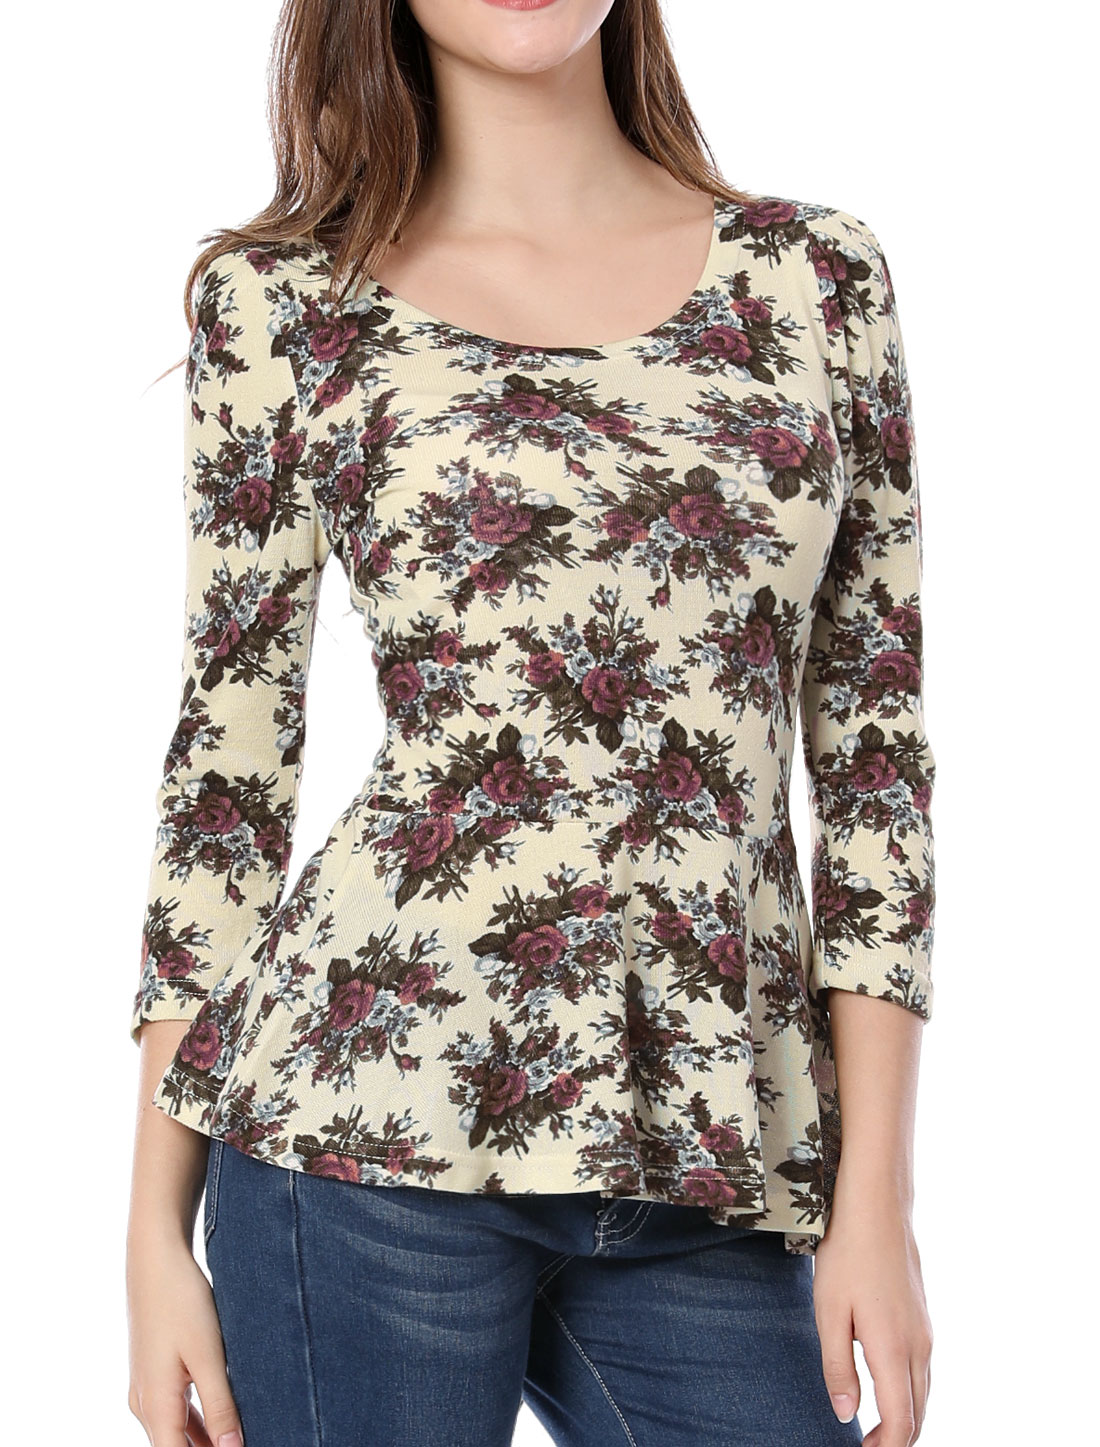 Lady Floral Prints Three Quarter Sleeve Casual Blouse Beige S